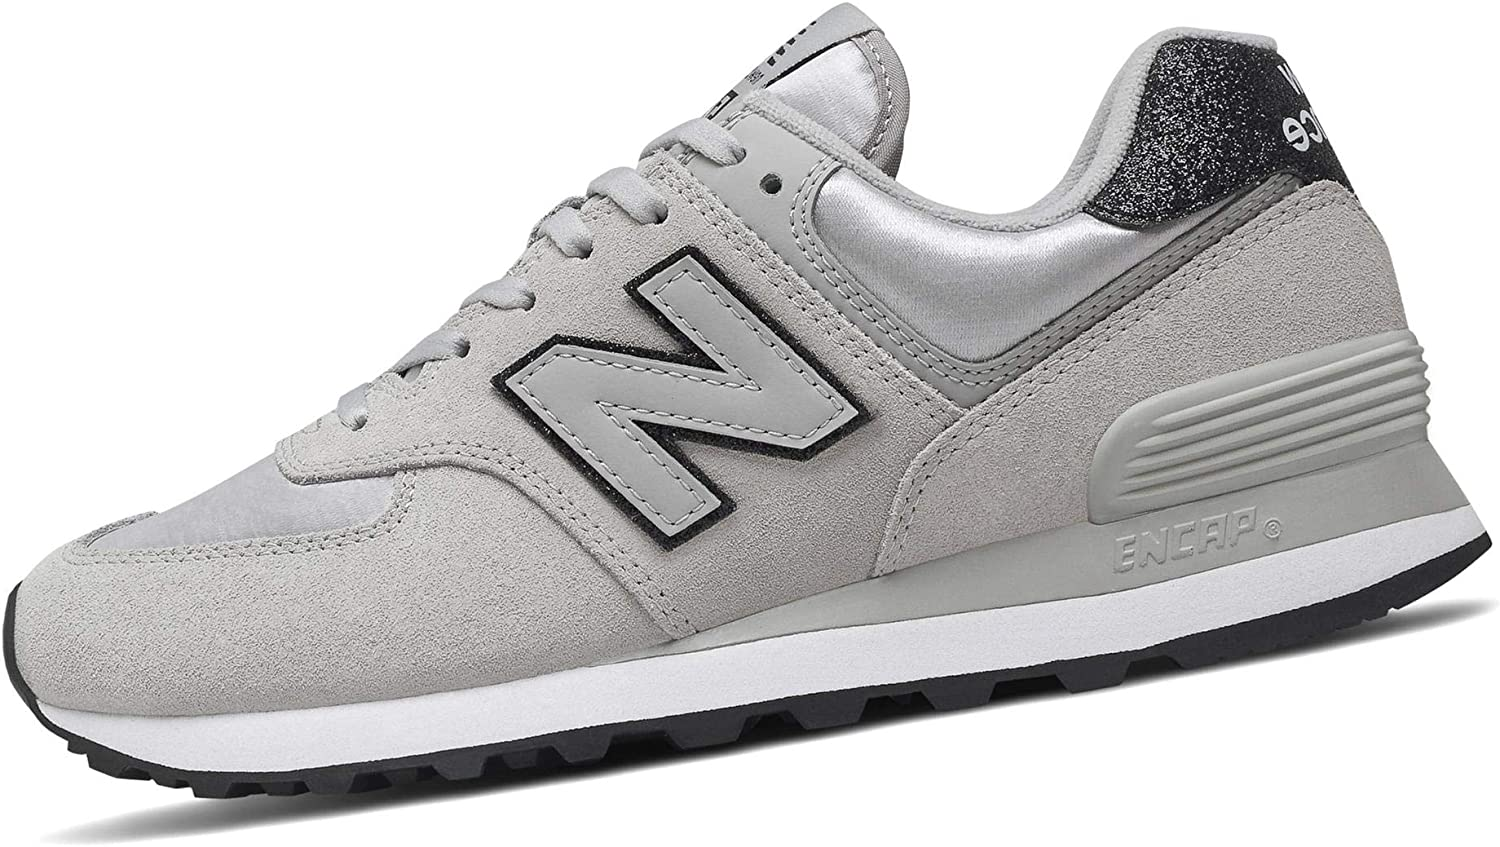 New Balance 574 Rain Cloud/White Suede Adult Trainers Shoes